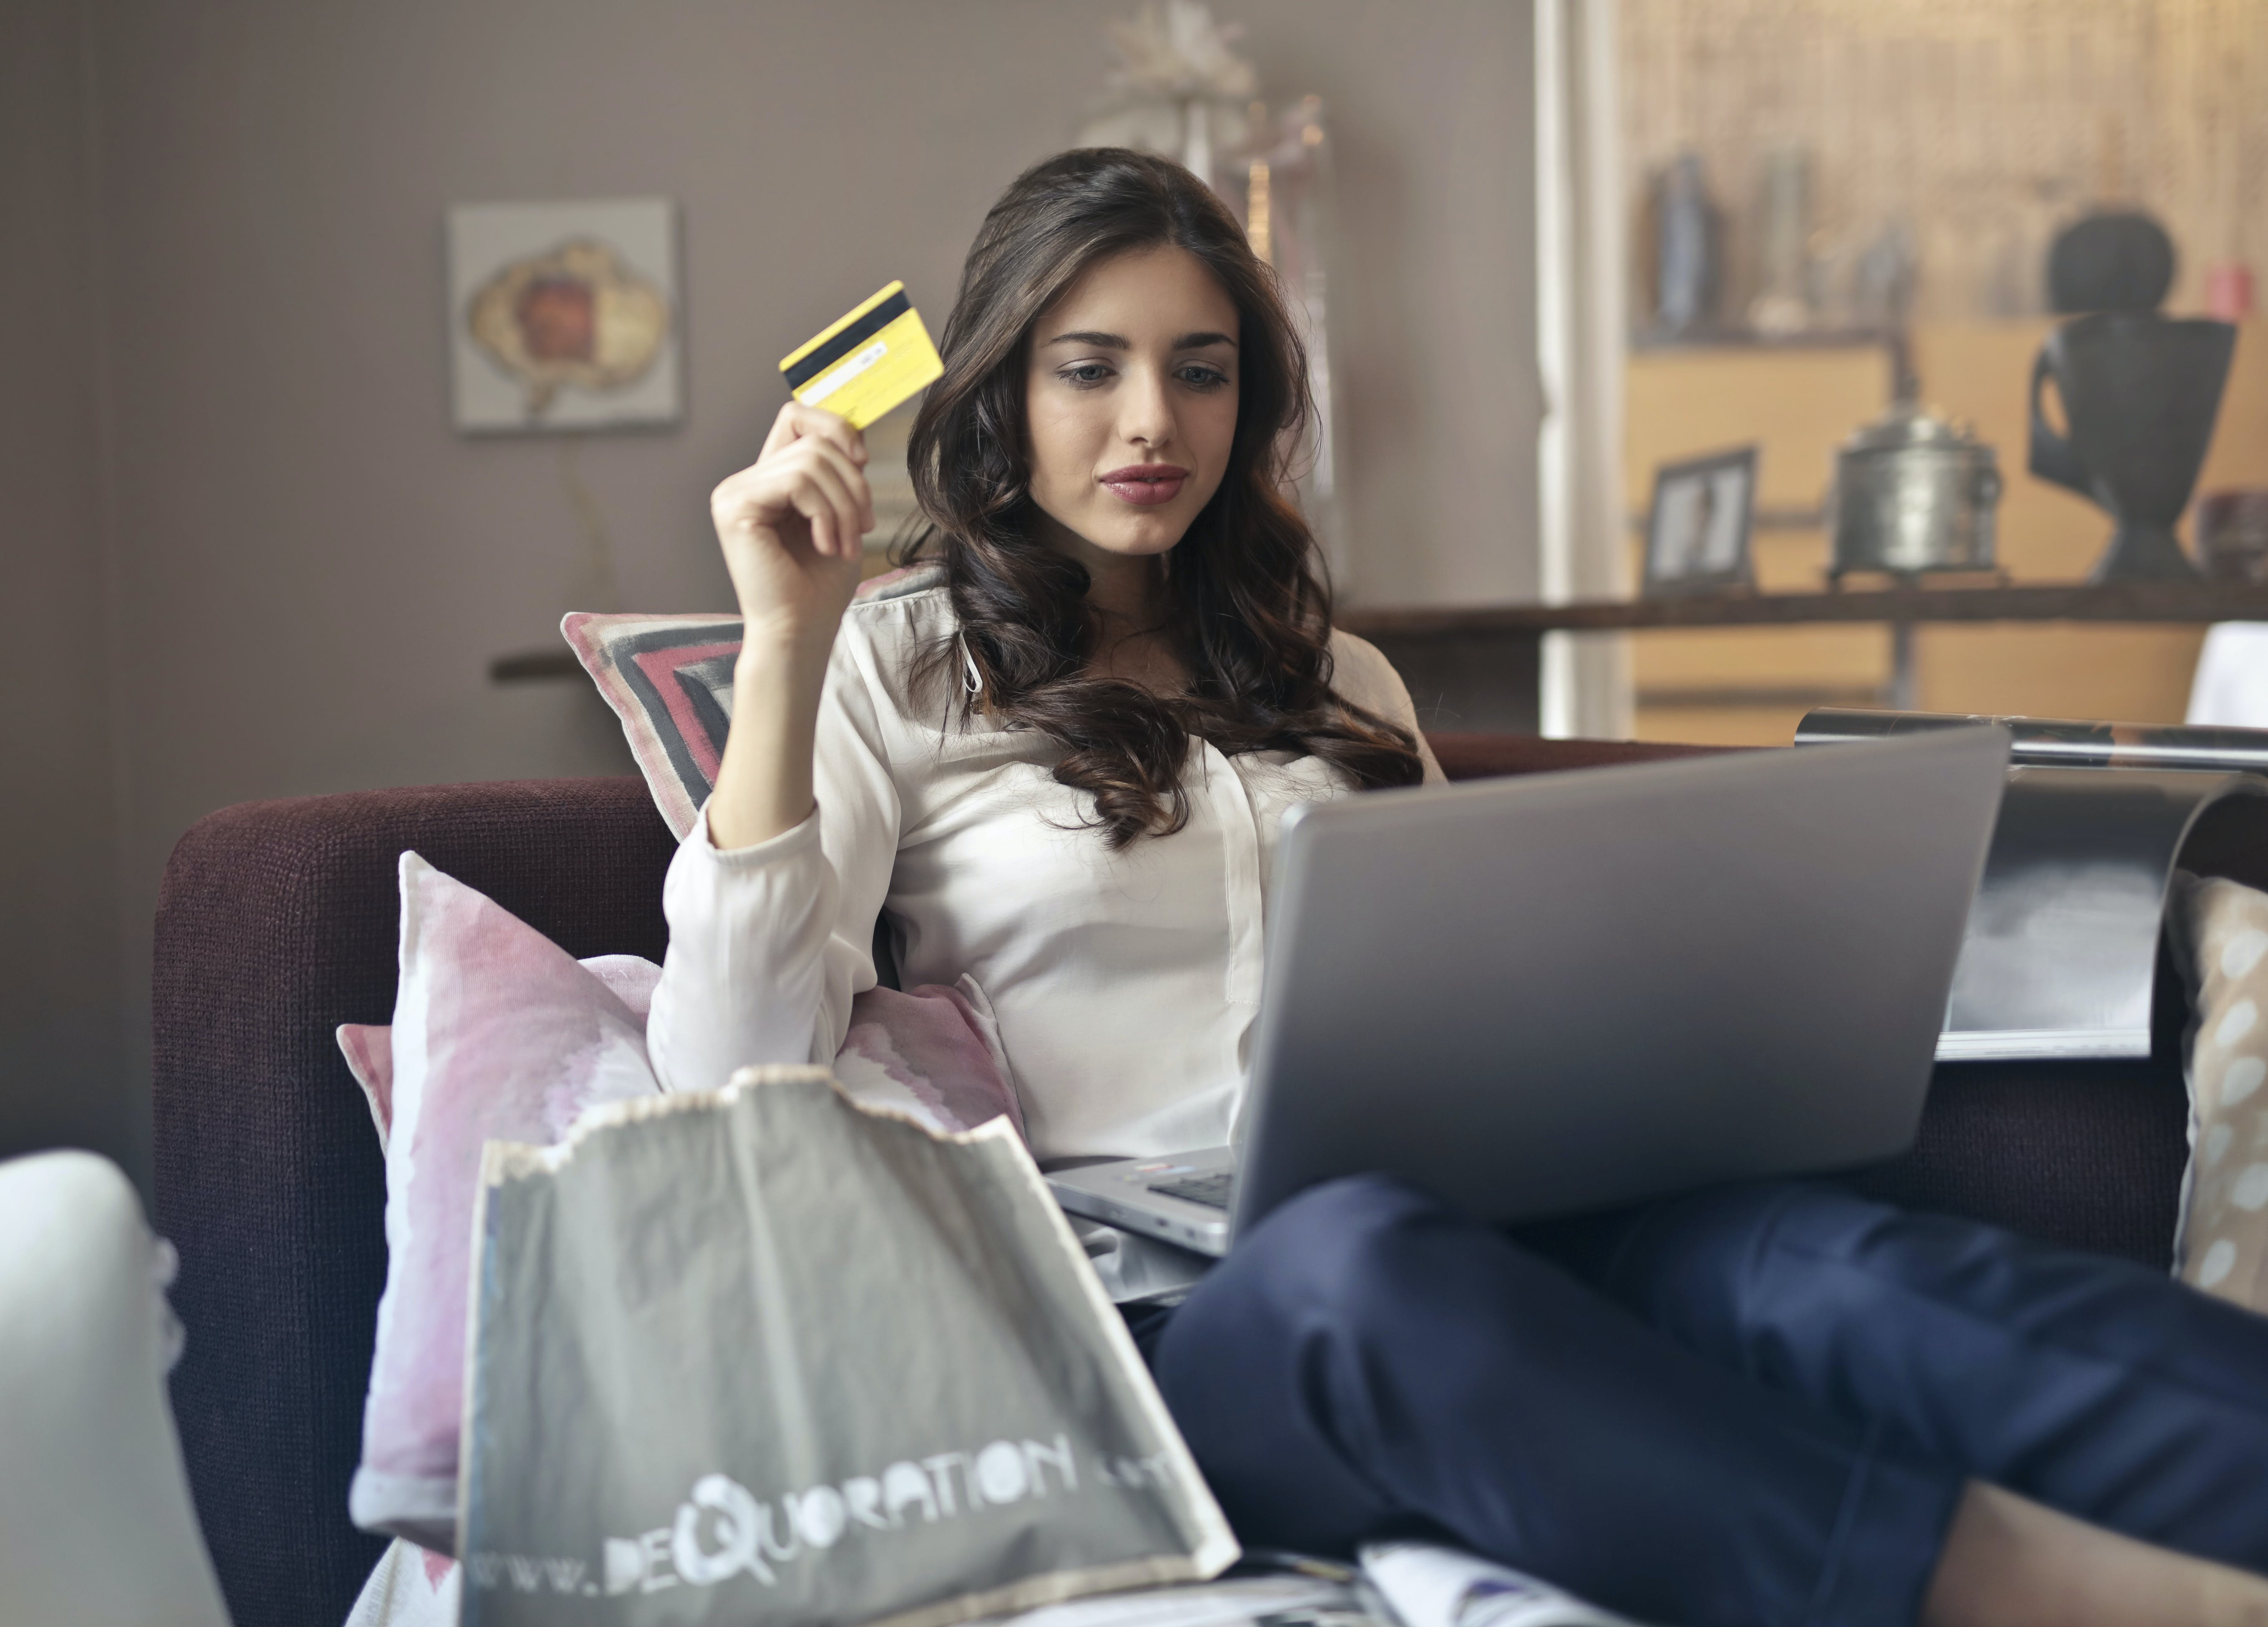 woman holding card while shopping